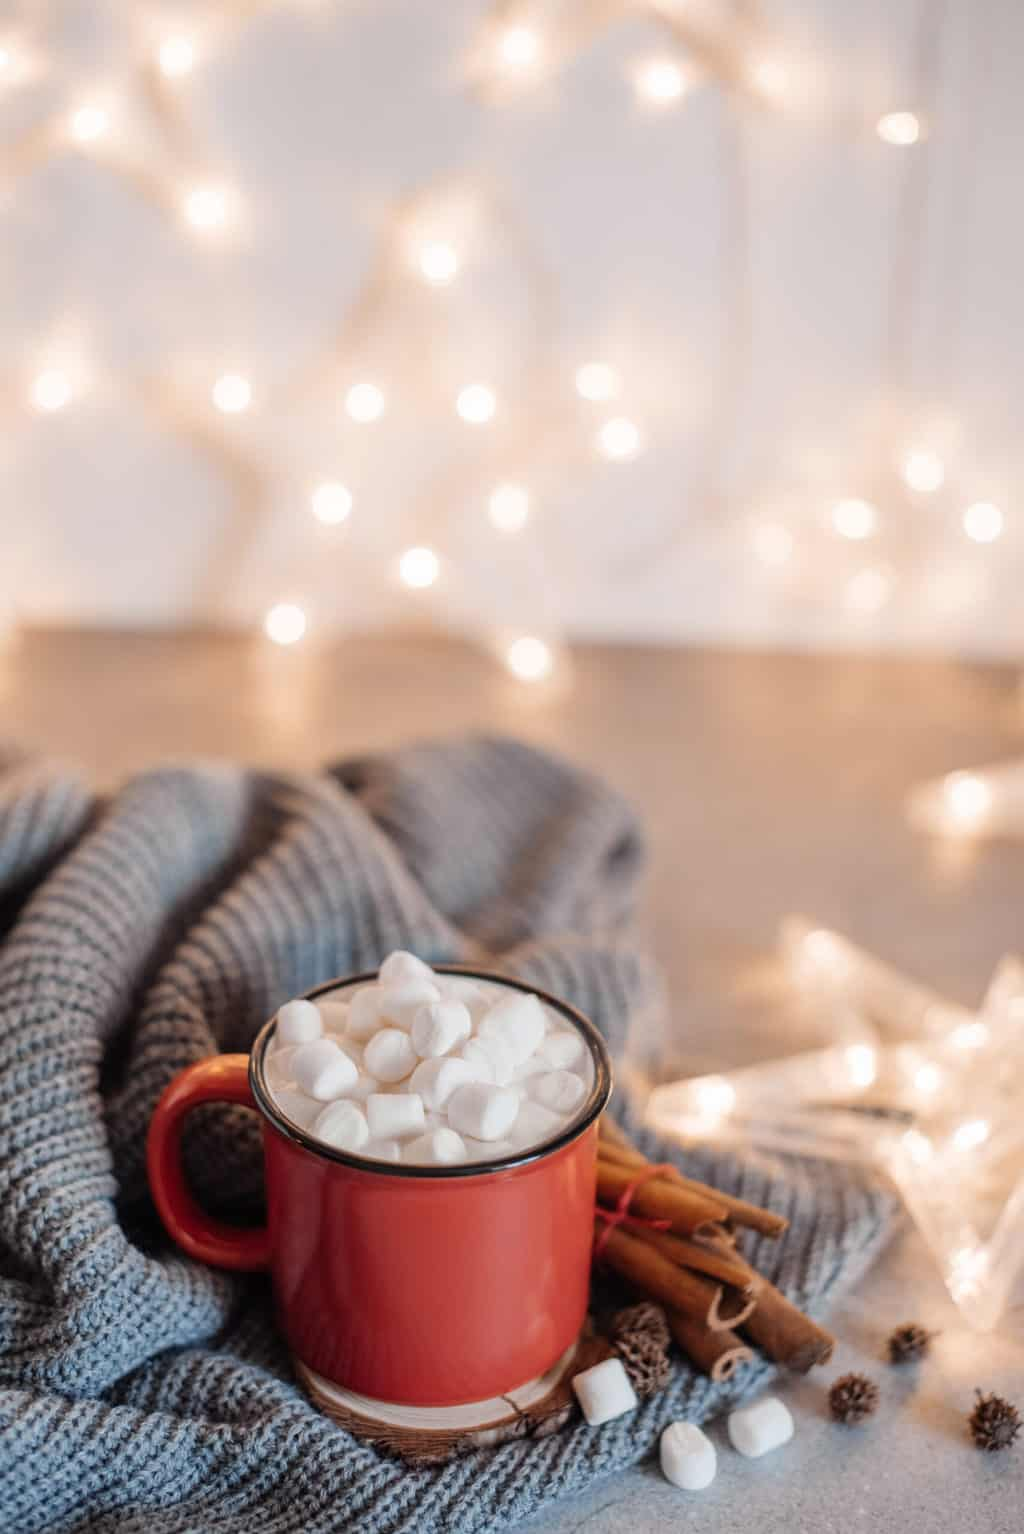 Red mugs with hot chocolate and marshmallows and gingerbread cookies. Christmas concept